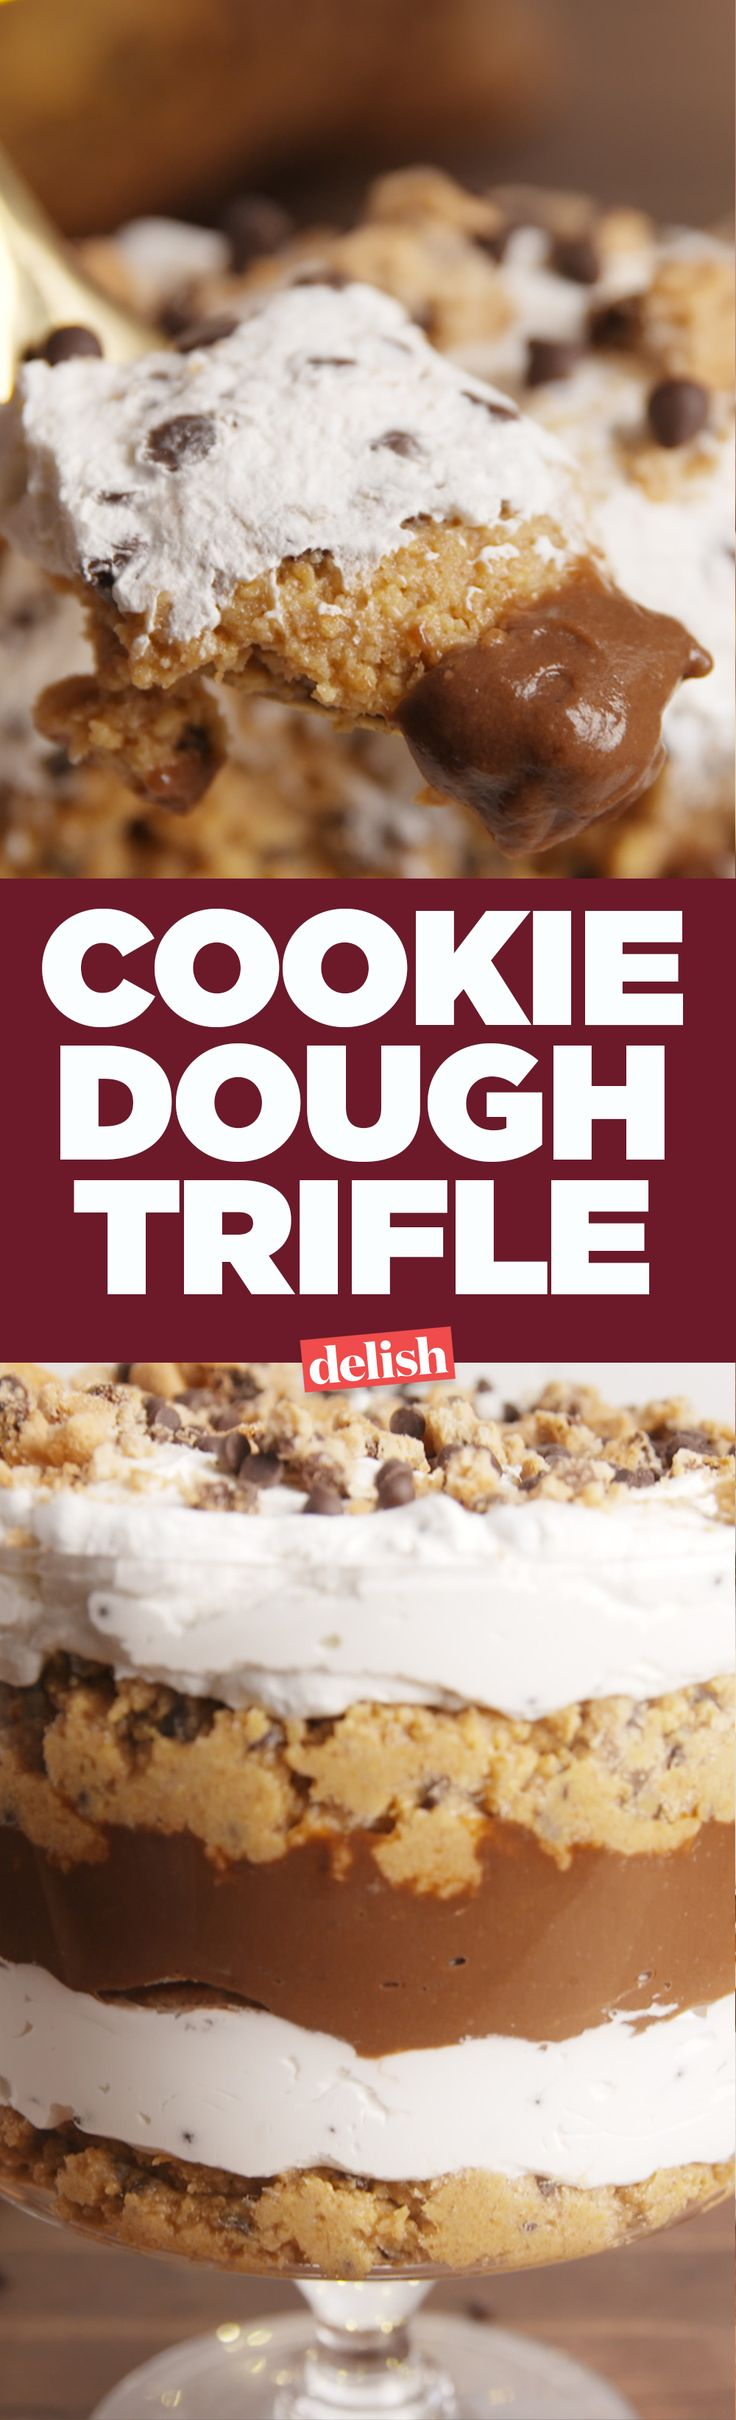 This Cookie Dough Trifle uses a brilliant hack to make cookie dough. Get the recipe on Delish.com. (Vegan Cake Hacks)